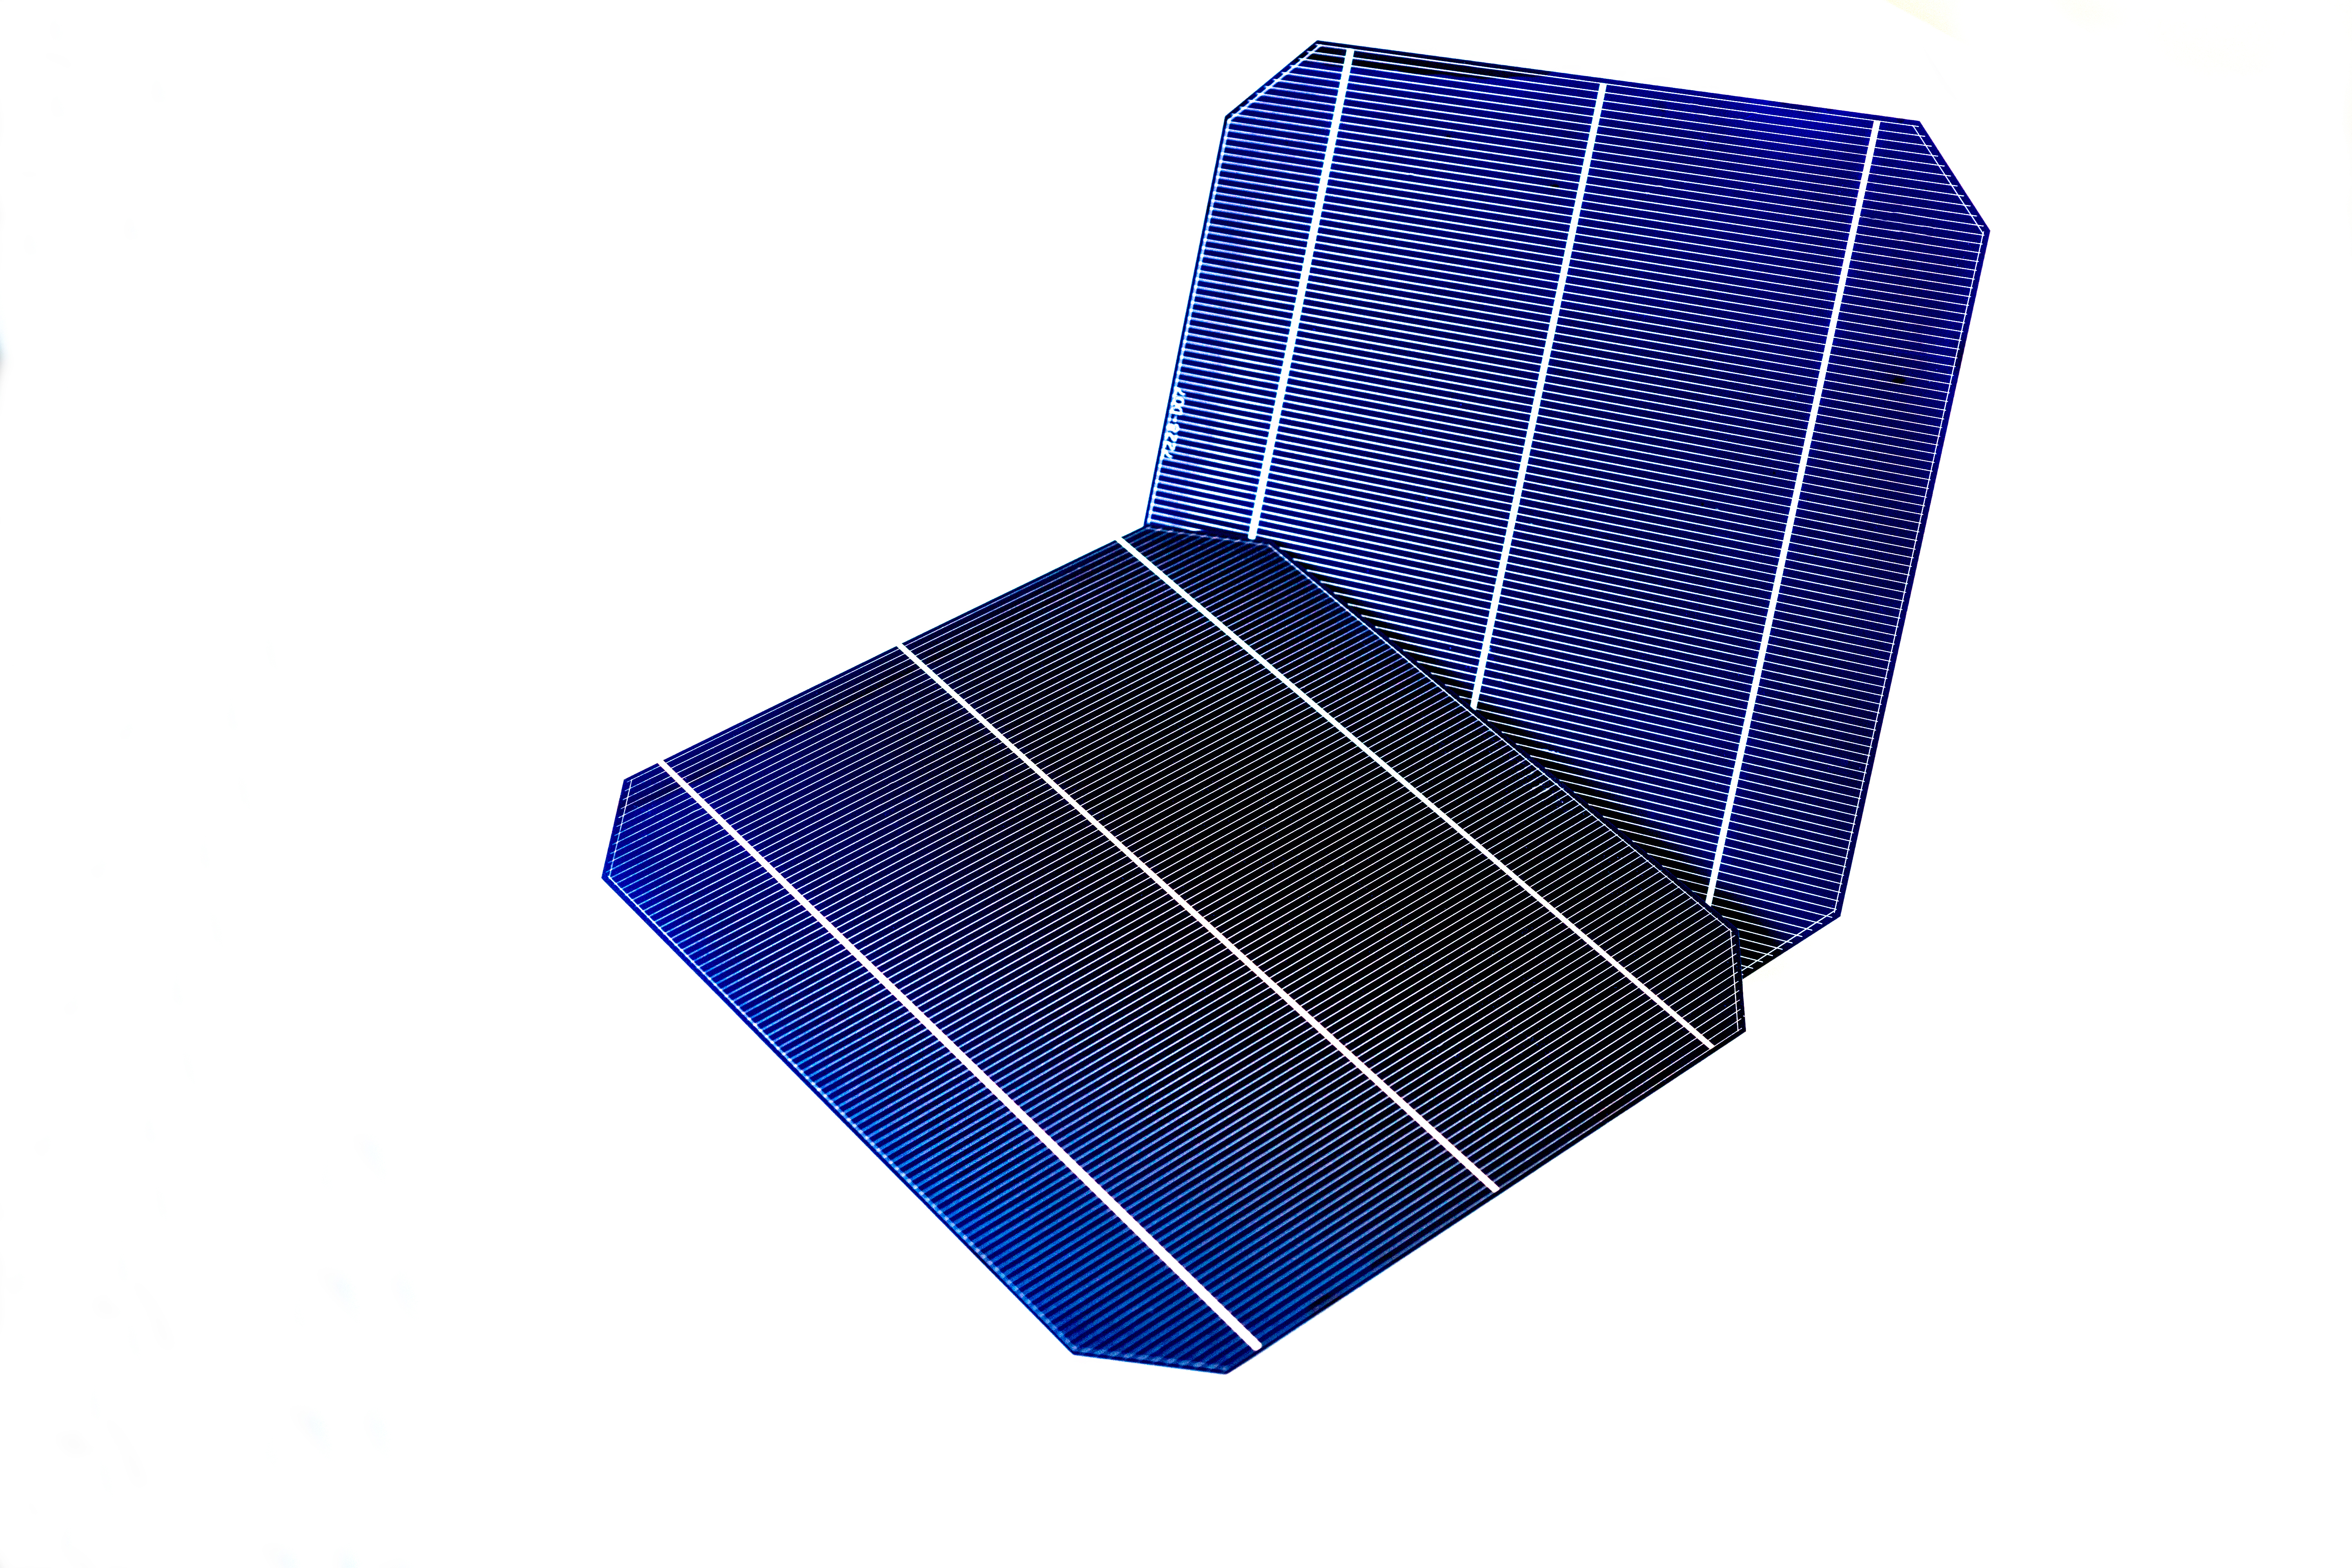 solar cells Photovoltaic solar panels absorb sunlight as a source of energy to generate electricity a photovoltaic (pv) module is a packaged, connect assembly of typically 6x10 photovoltaic solar.